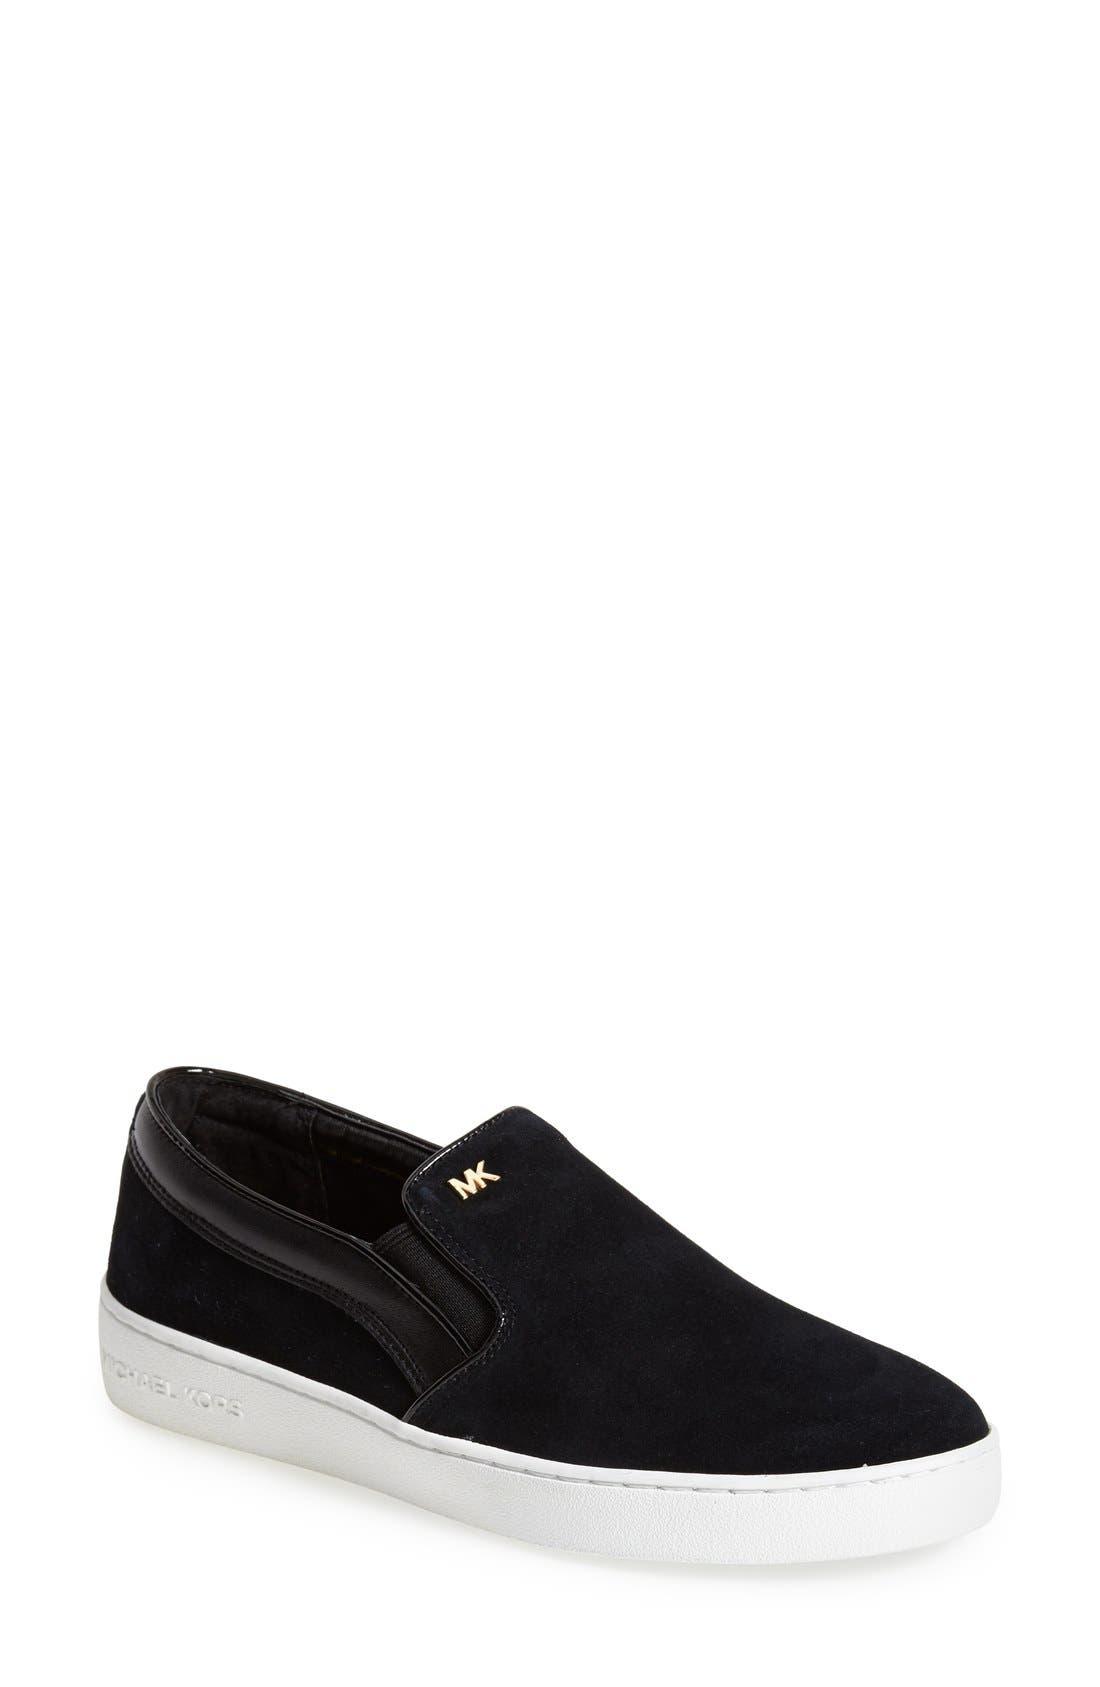 Keaton Slip-On Sneaker,                             Main thumbnail 14, color,